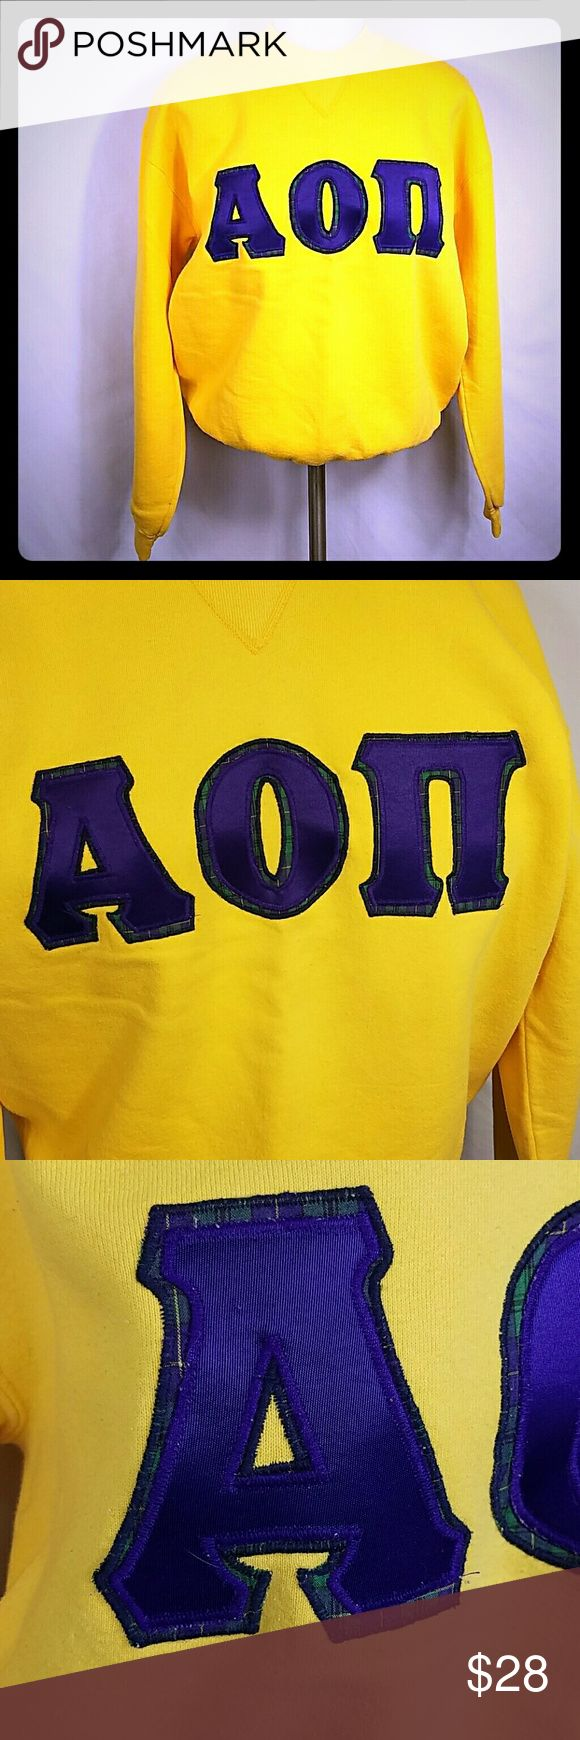 🆕 AOII Alpha Omicron Pi Letter Sweatshirt LSU Alpha Omicron Pi sorority letters sweatshirt. Sweatshirt is Russell sportswear size large and is a bright yellow color. Letters are purple on plaid. Double stitched letters professionally done while I was in college. Good condition but has a little pilling. LSU colors! Russell Tops Sweatshirts & Hoodies